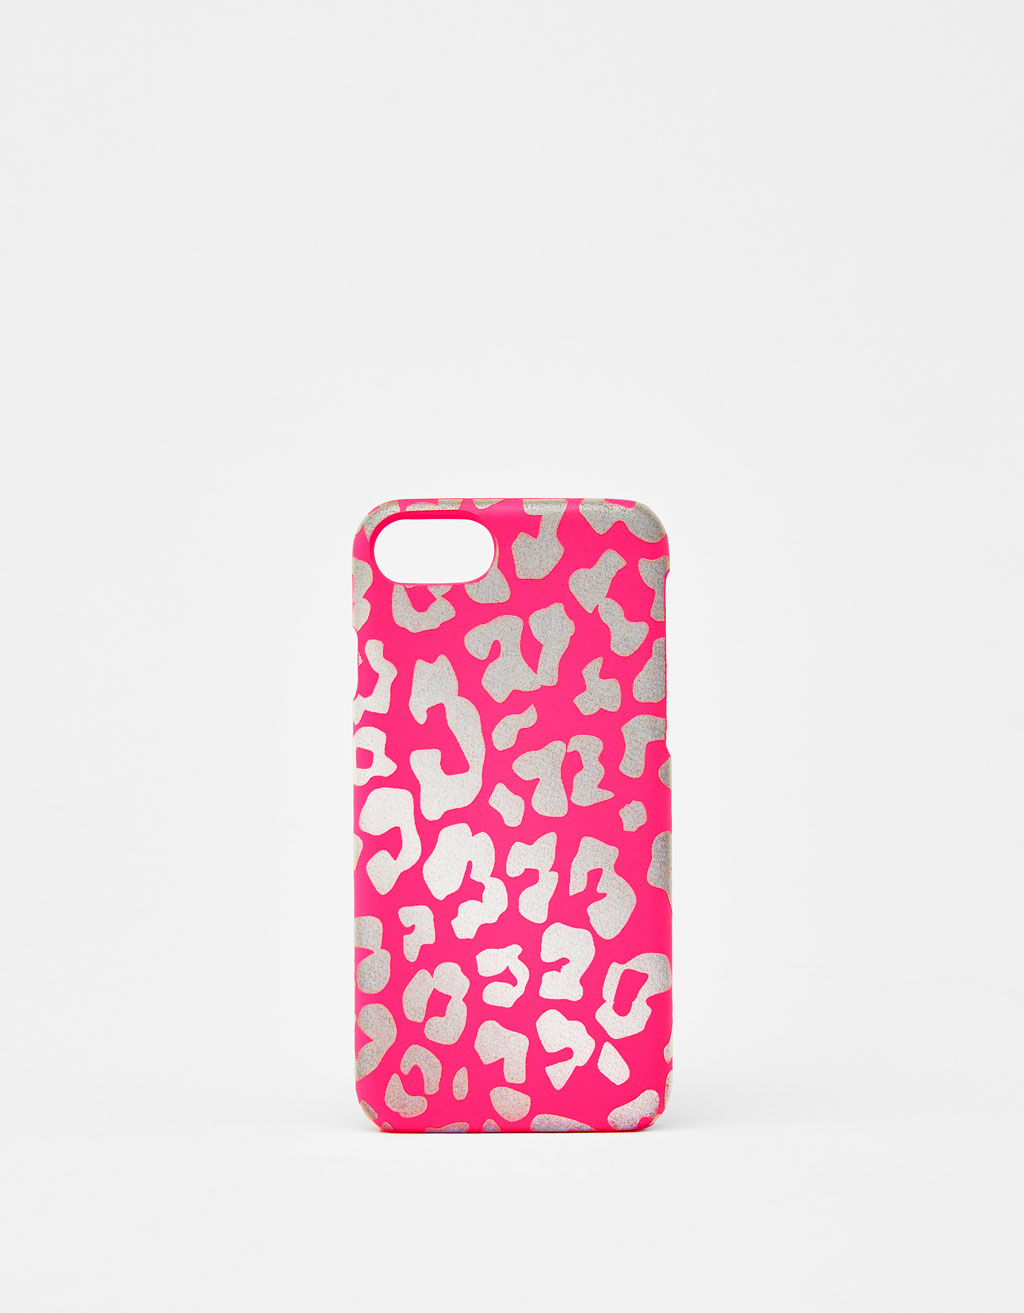 Cover leopard refleks iPhone 6 / 6S / 7 / 8